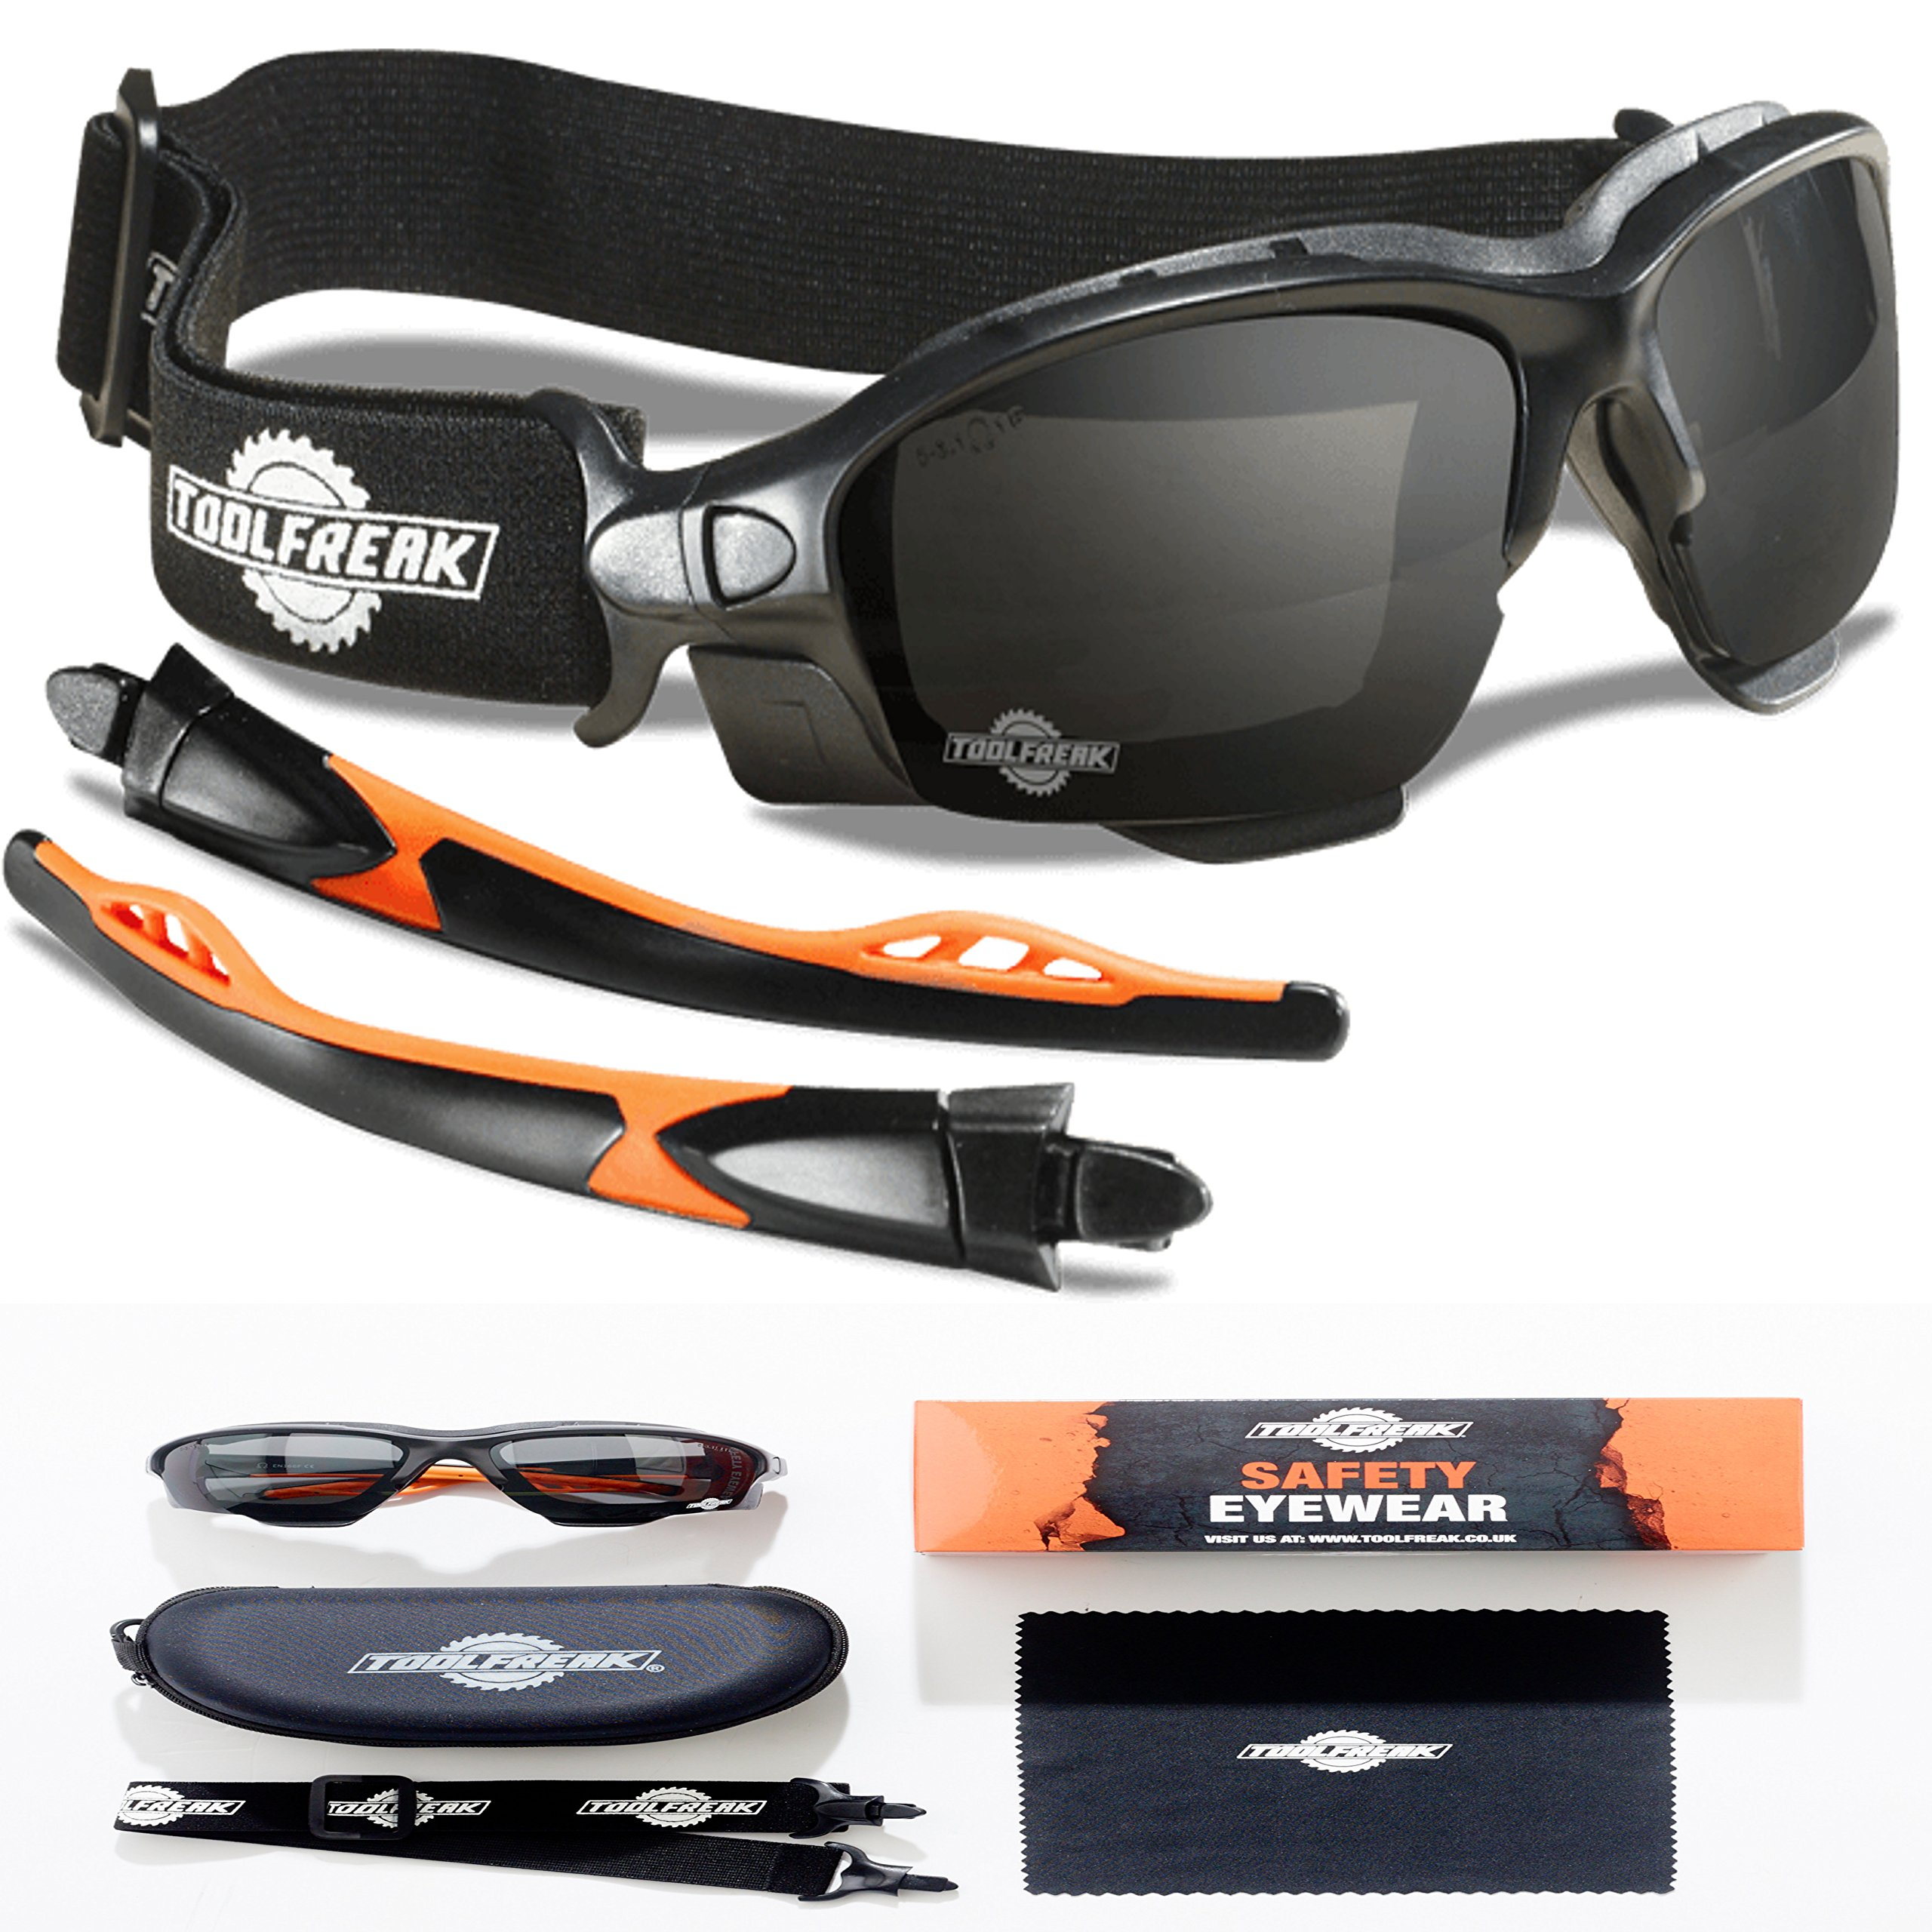 ToolFreak-Spoggles,Safety Glasses & Protective Goggles | Eyewear Foam Padded for Comfort and Better Protection | Treated to Help Reduce Fog and Scratch | Smoke Tinted Lens with Maximum UV Protection